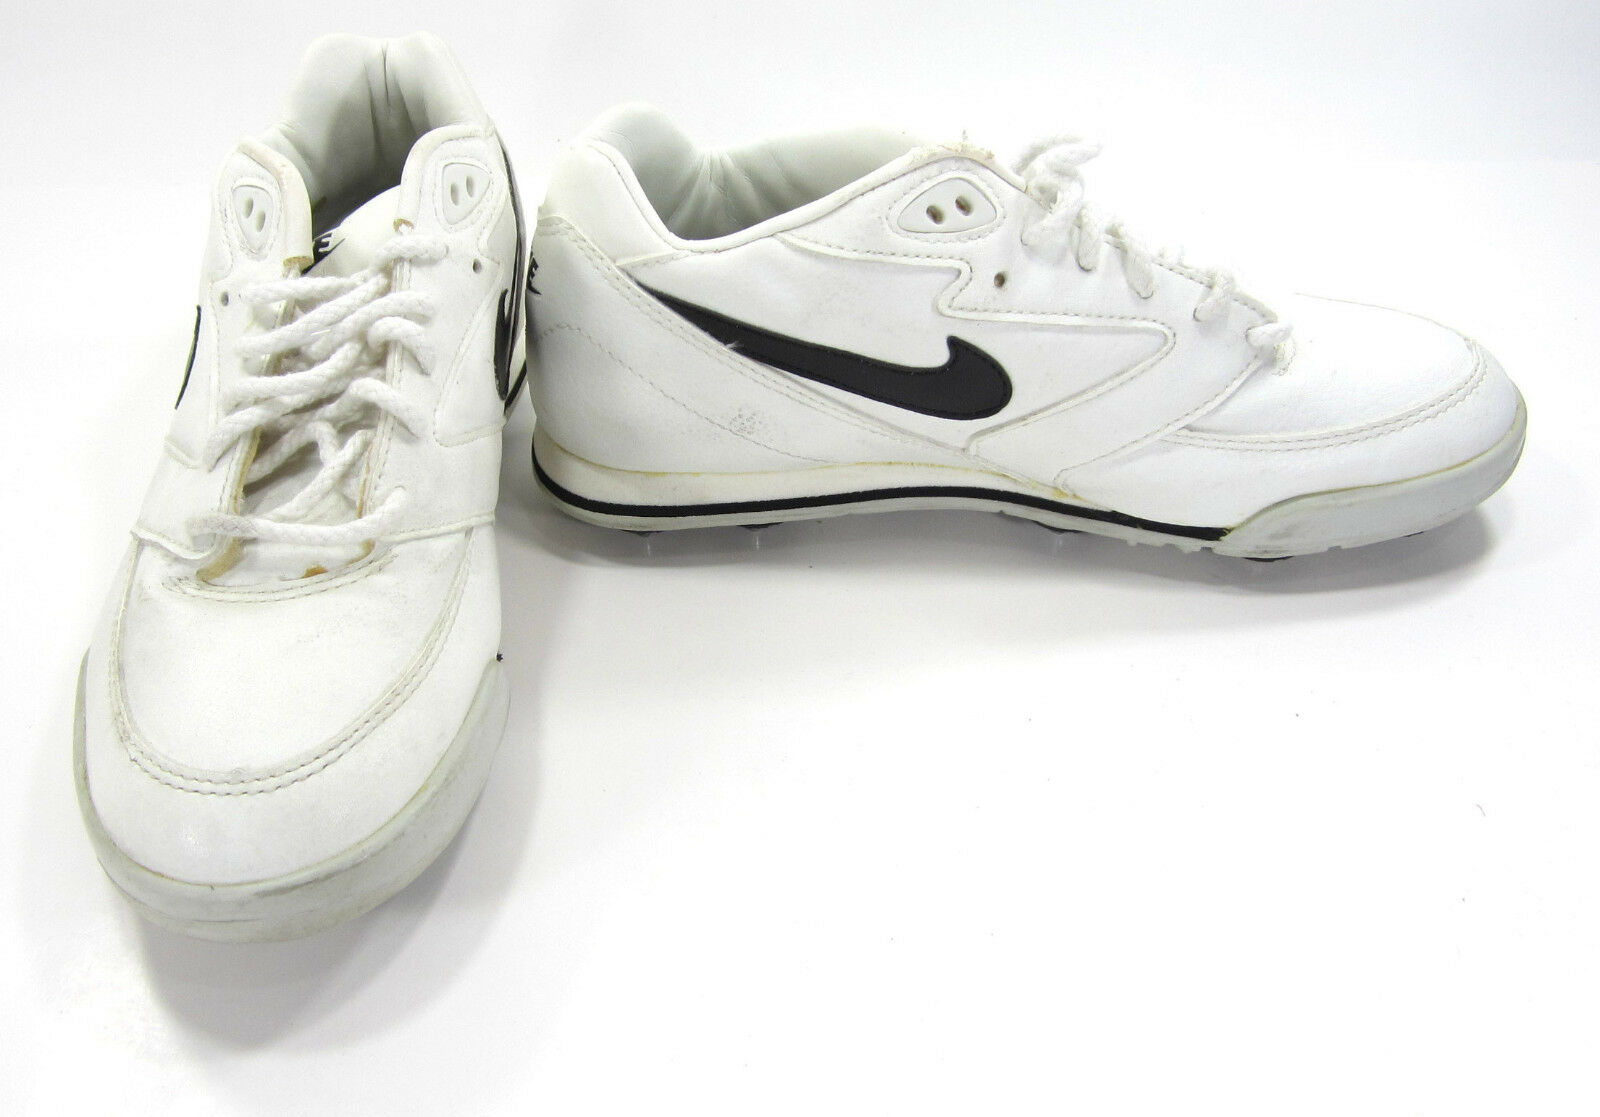 Nike Shoes Cleats Low Leather Athletic White/Black Sneakers Size 6.5 Eur 39